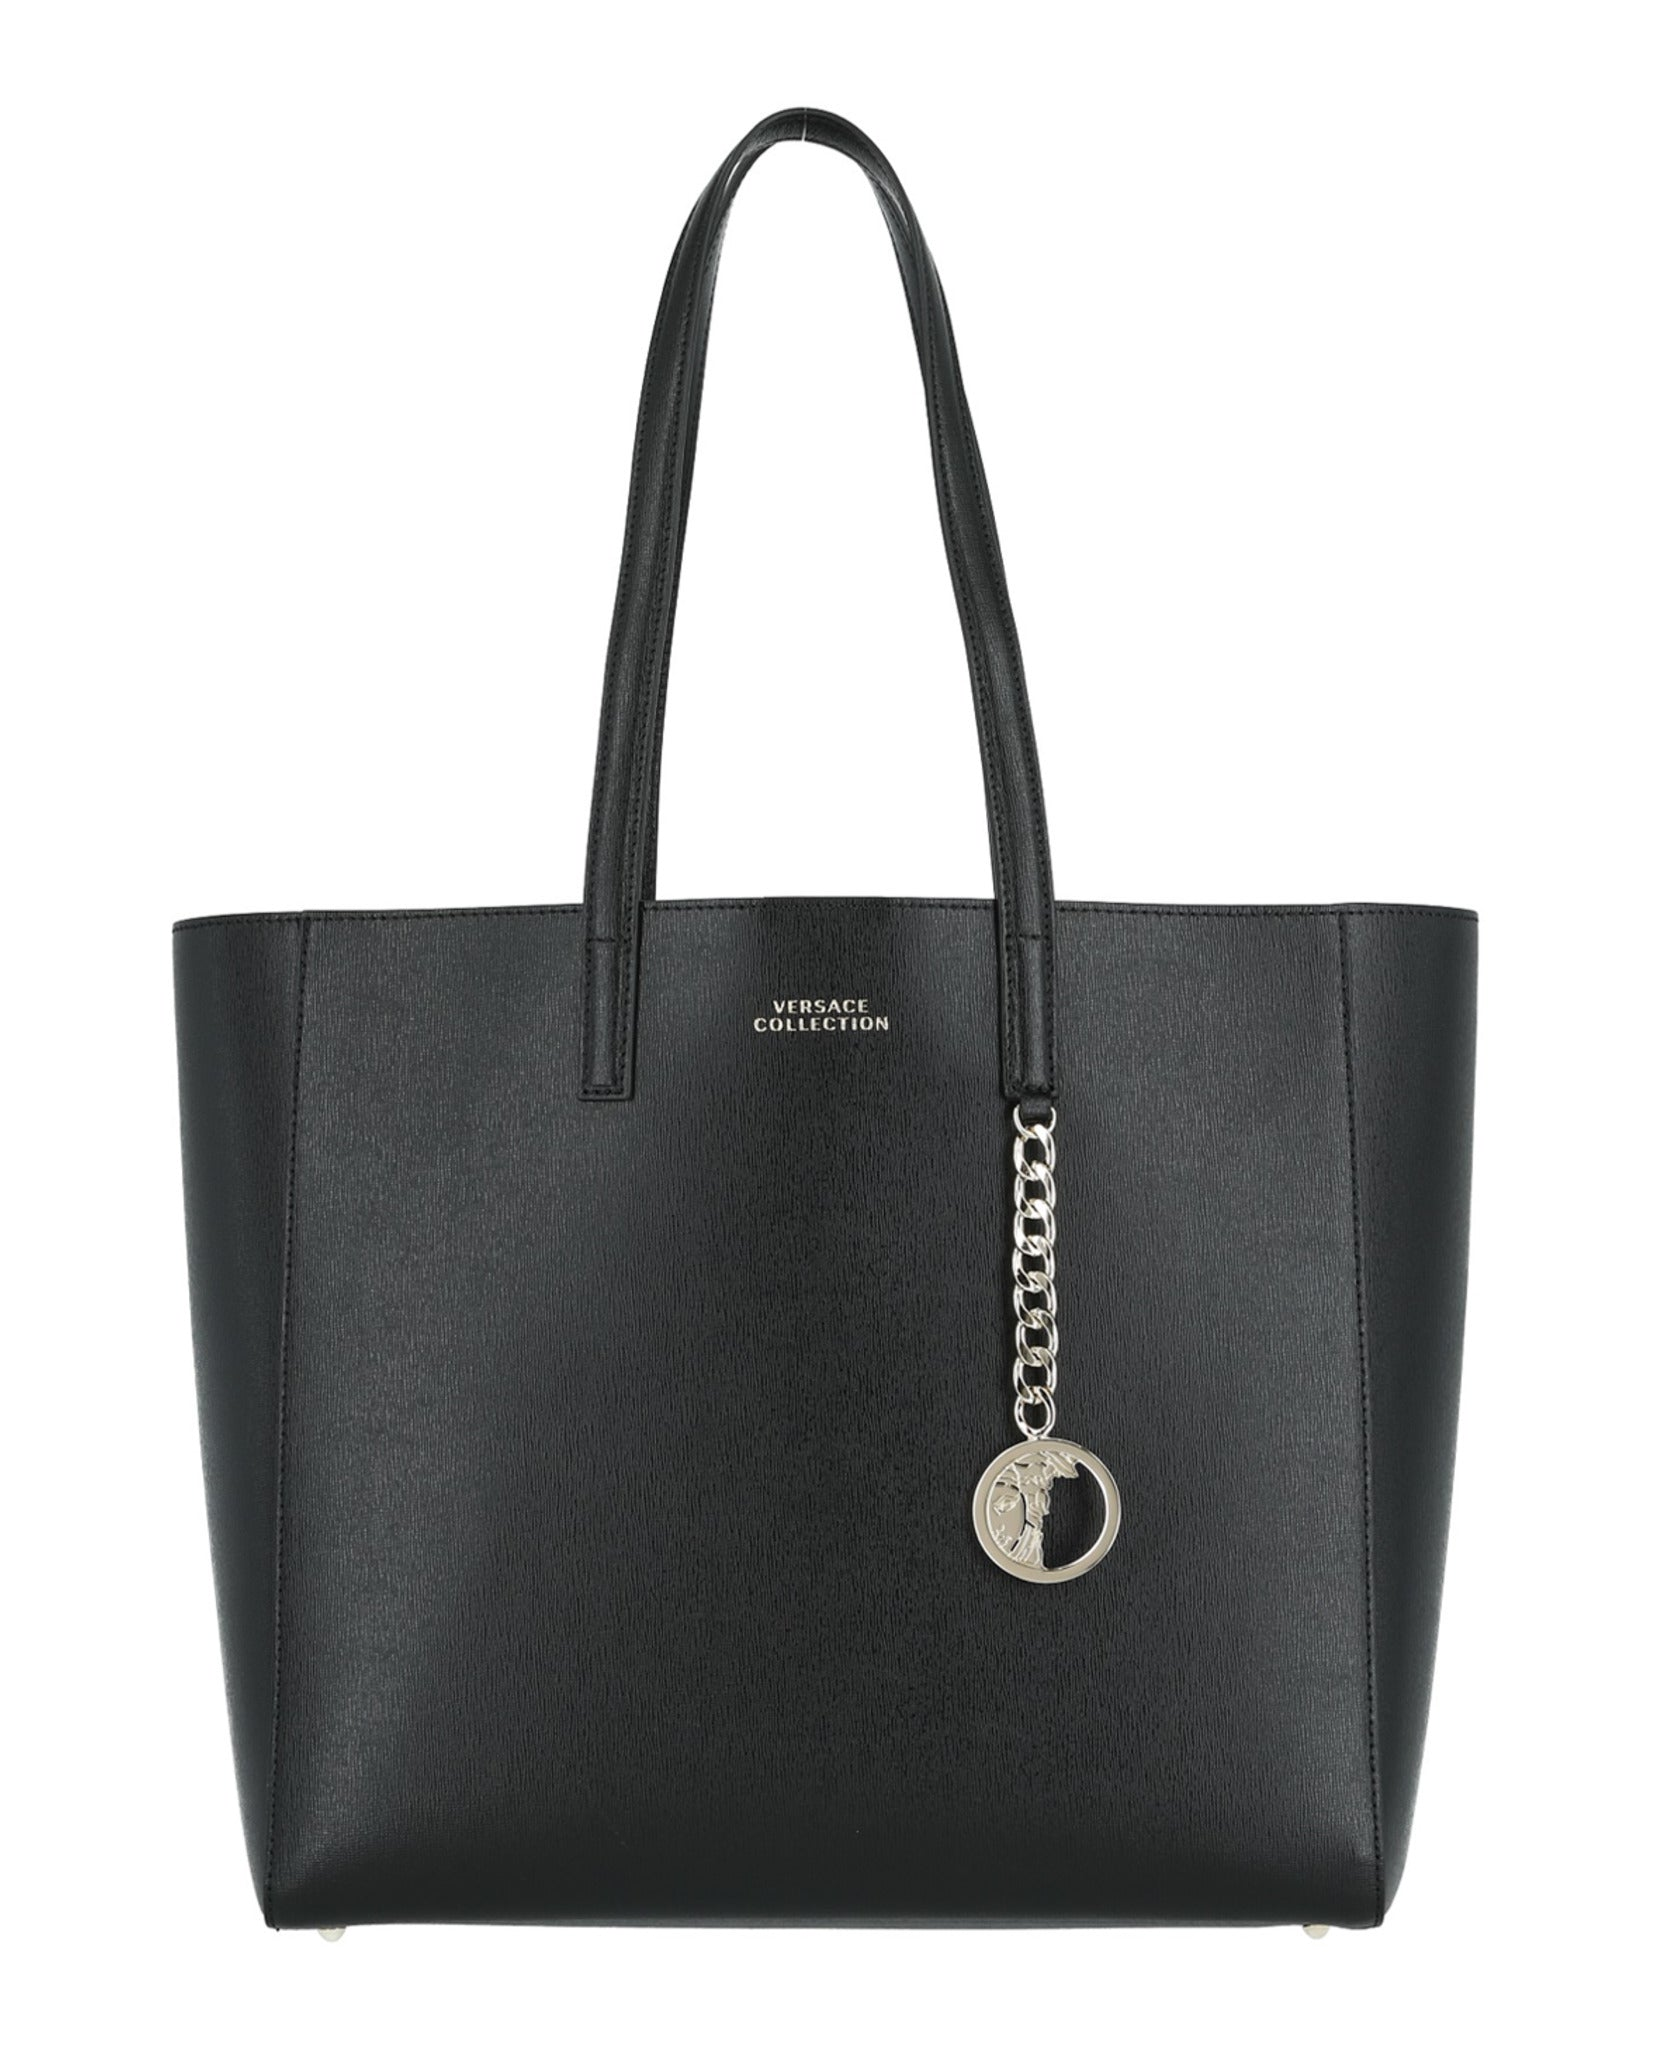 Versace Collection Logo Leather Tote – MadaLuxe Vault 5b220c893c3cc